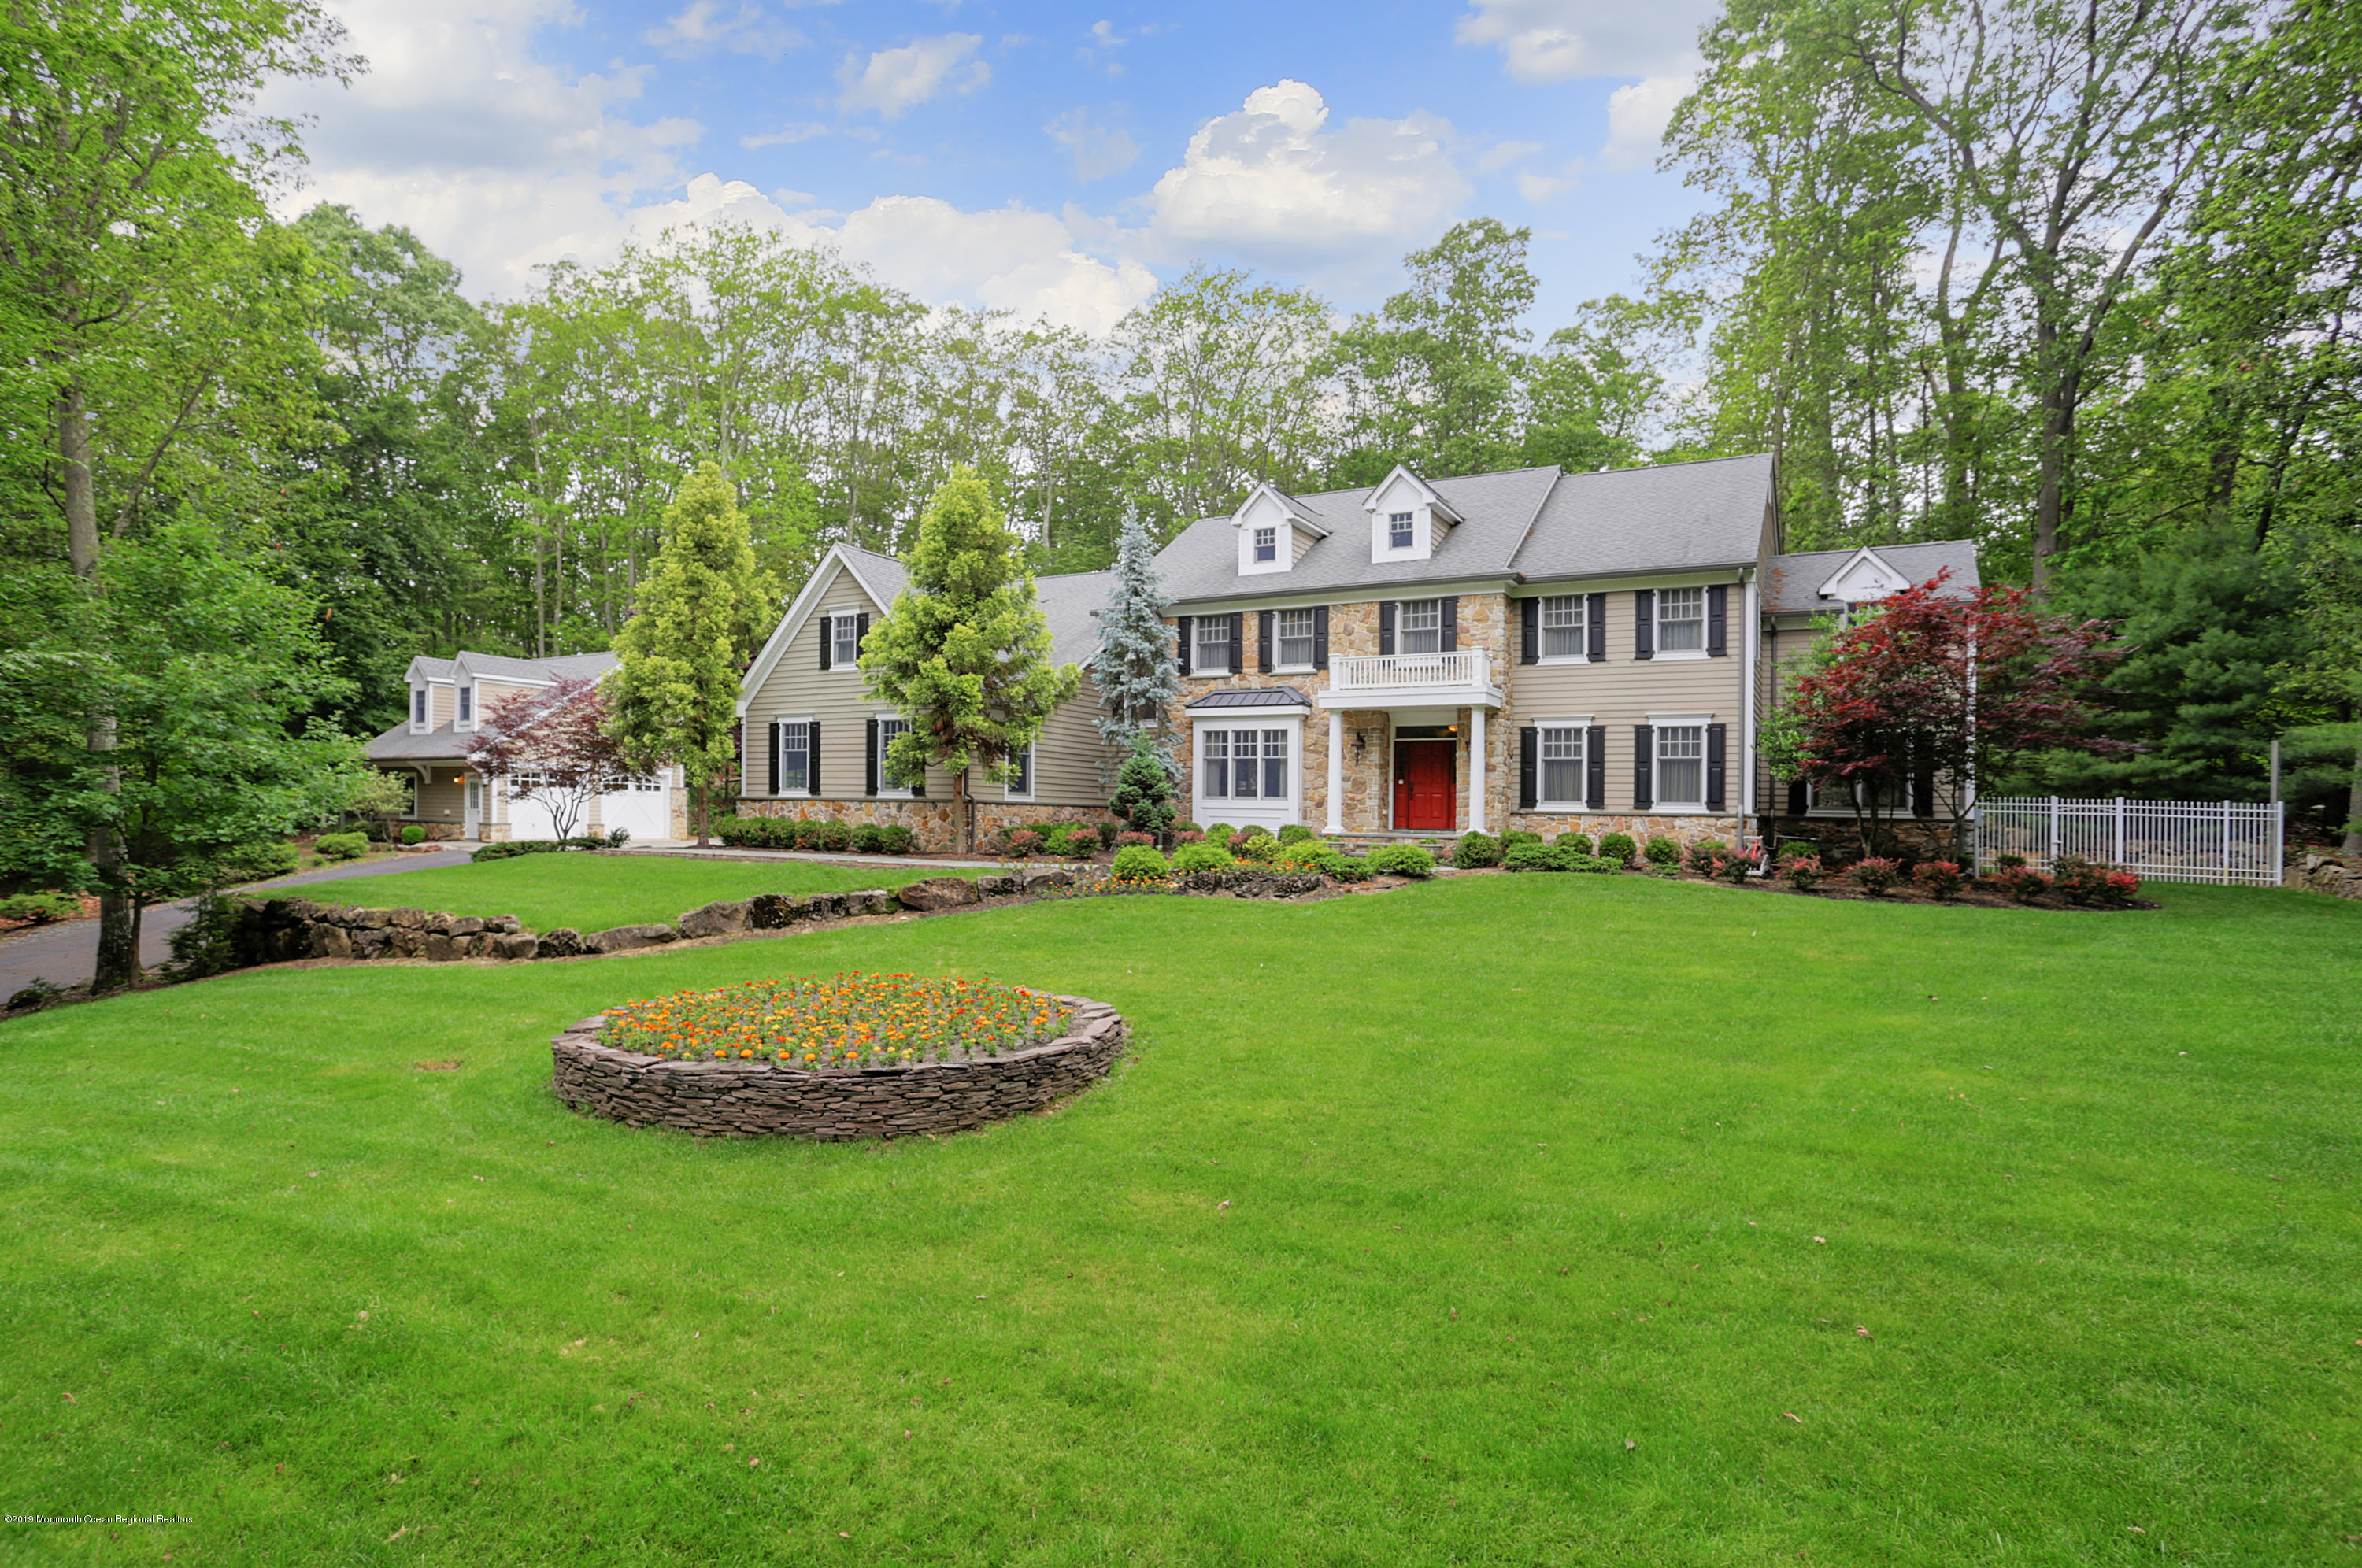 Photo of 61 Clover Hill Road, Colts Neck, NJ 07722